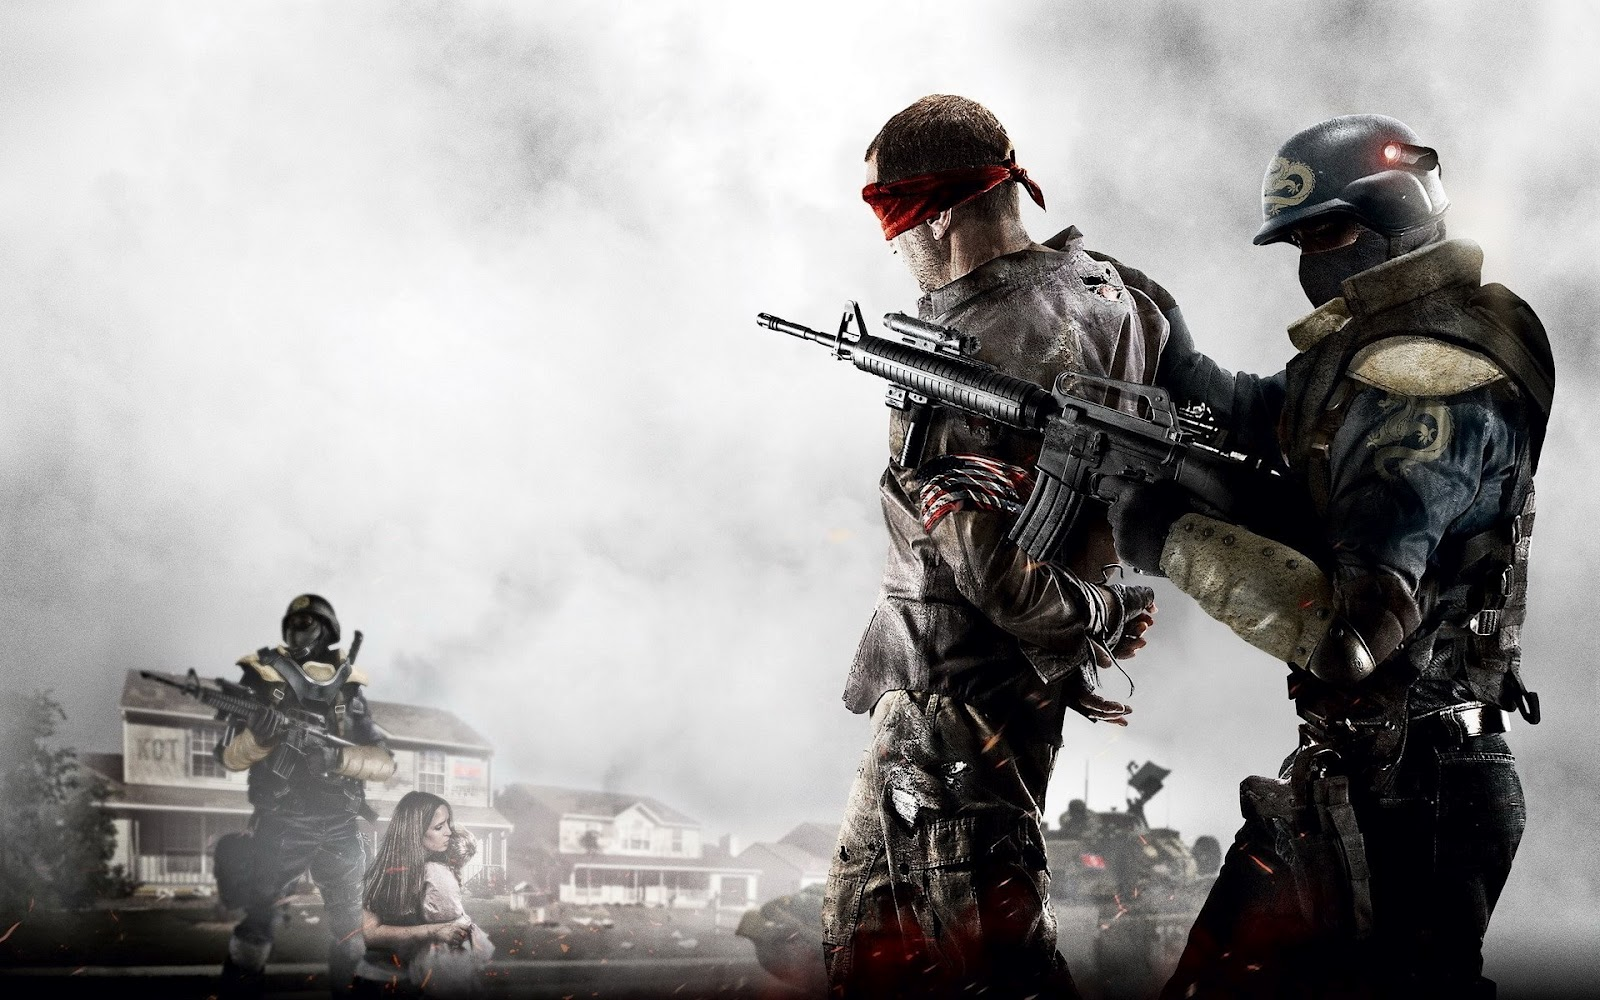 Graphics Shooter Hd Wallpaper Download Video Game Wallpapers 1600x1000